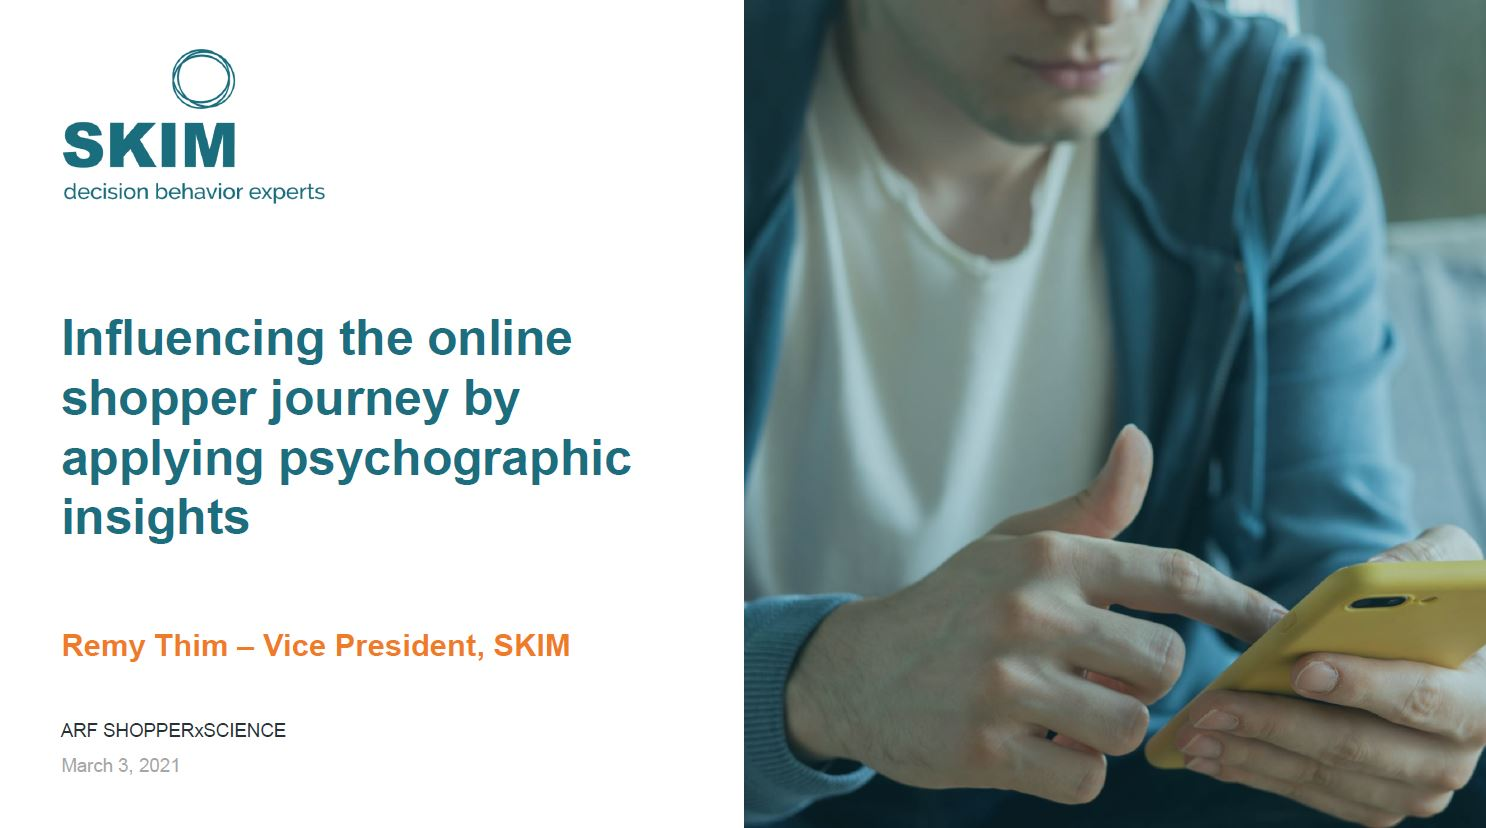 Influence the online shopper journey by applying psychographic insights